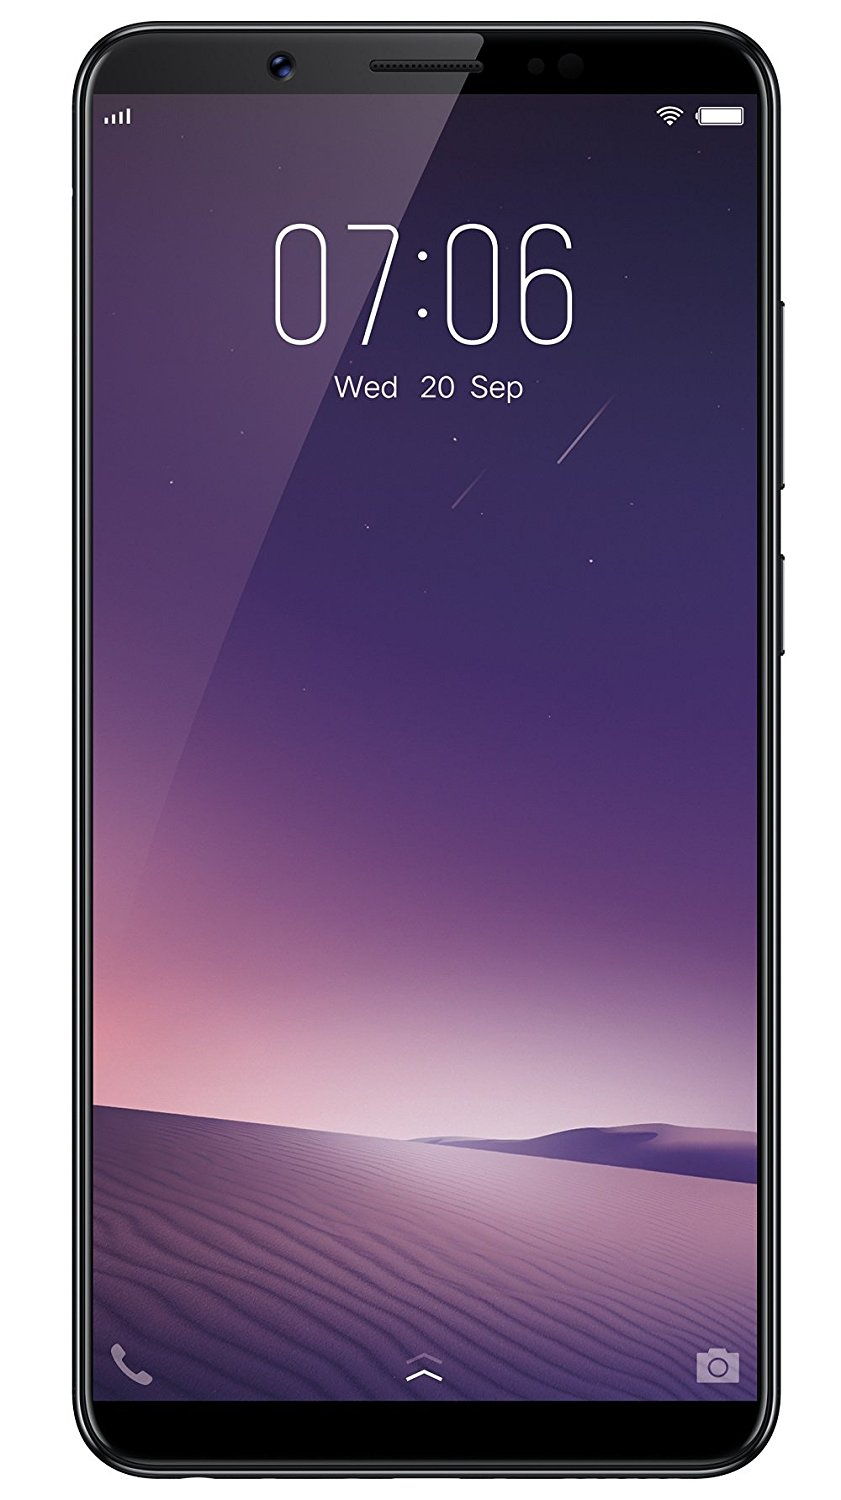 Vivo V7 Plus Photos Images And Wallpapers Mouthshutcom